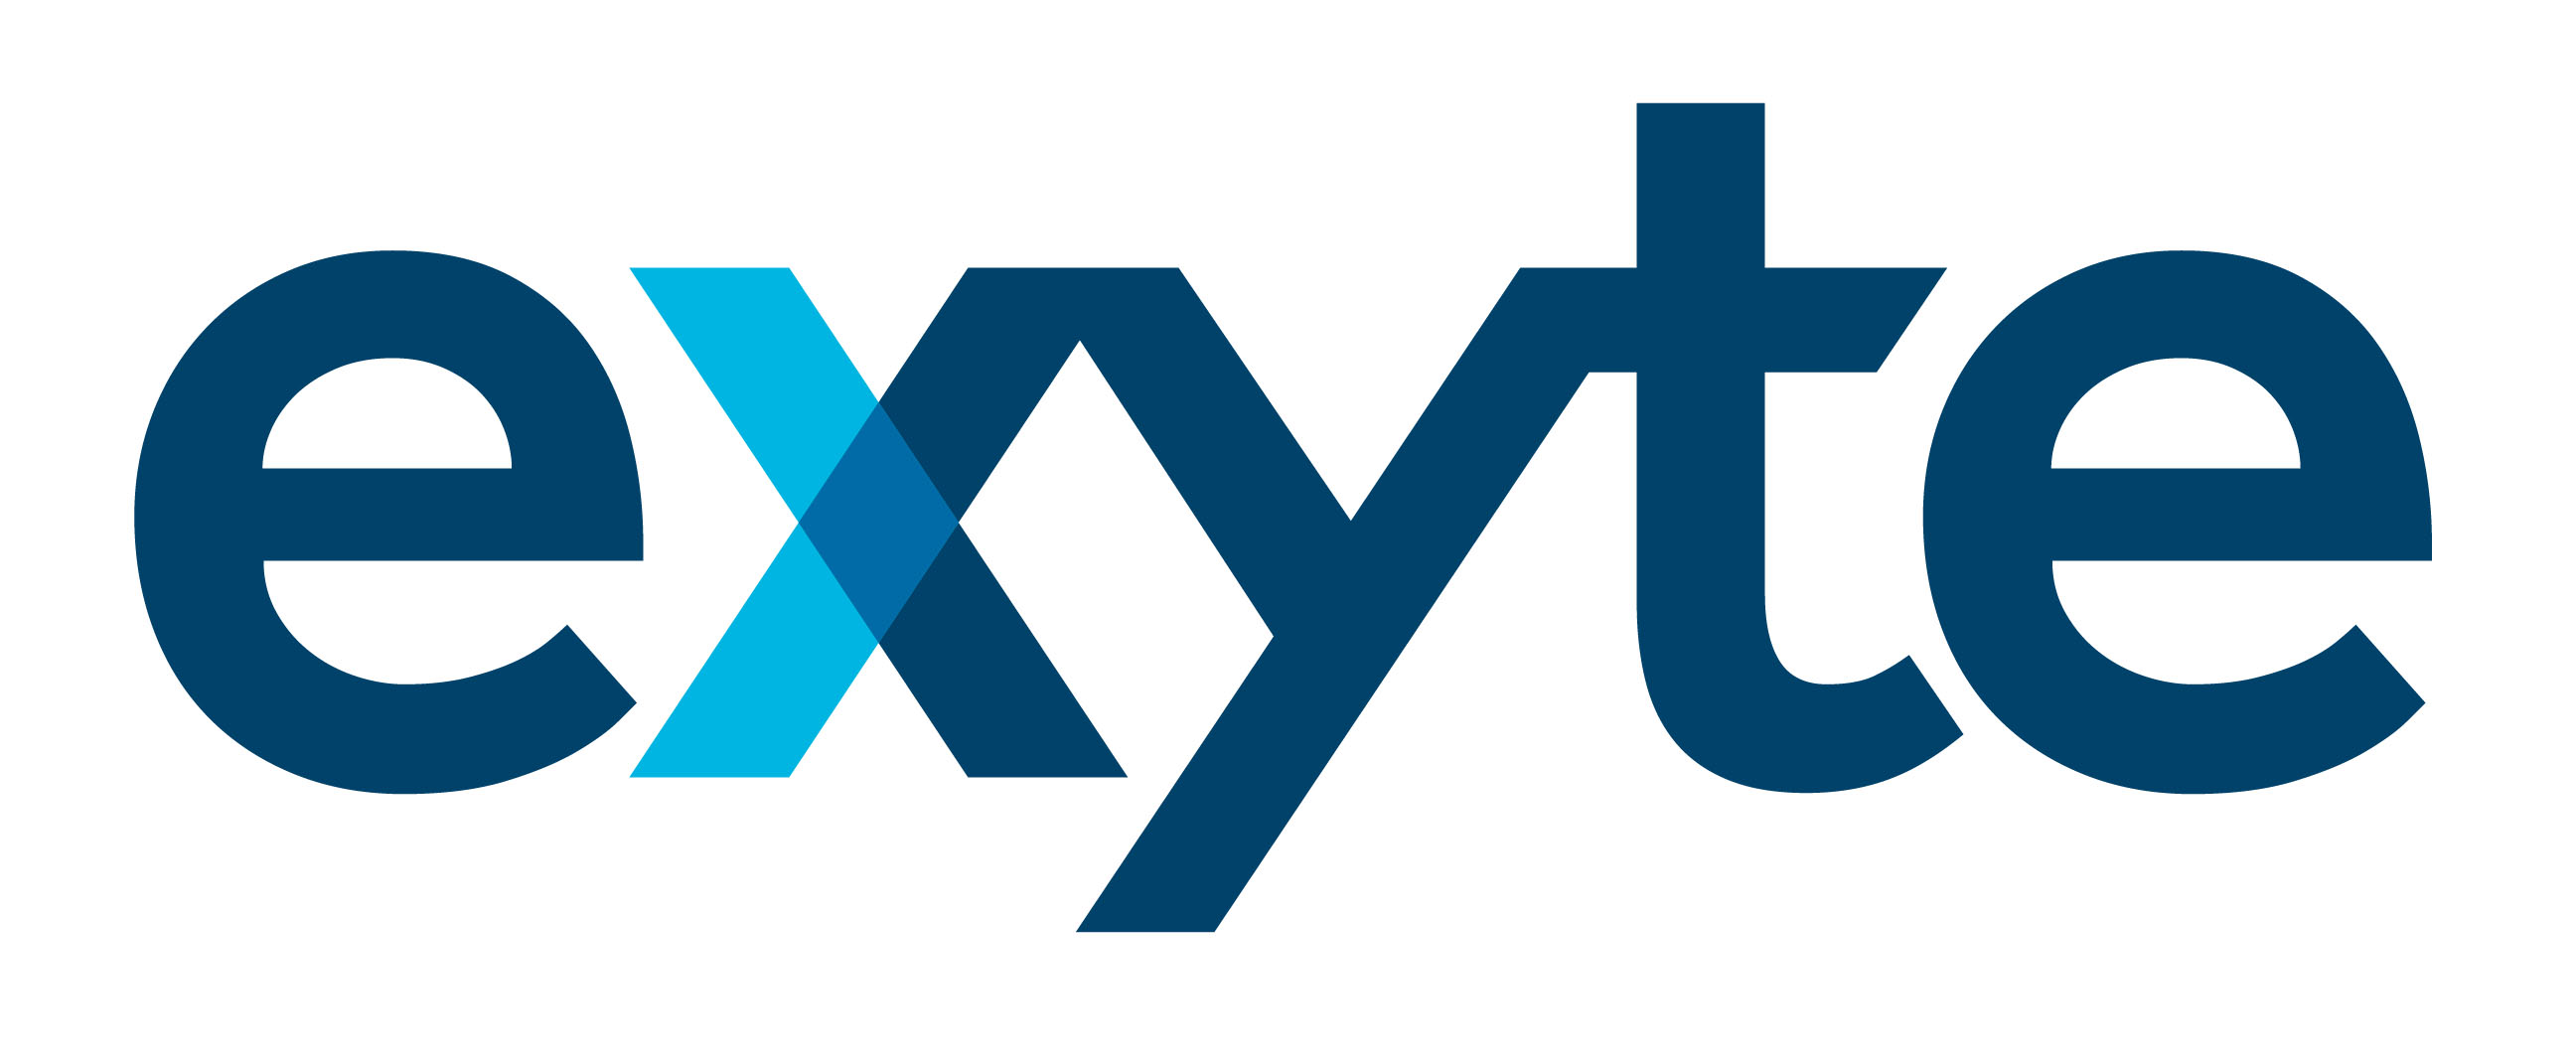 Exyte Technology GmbH